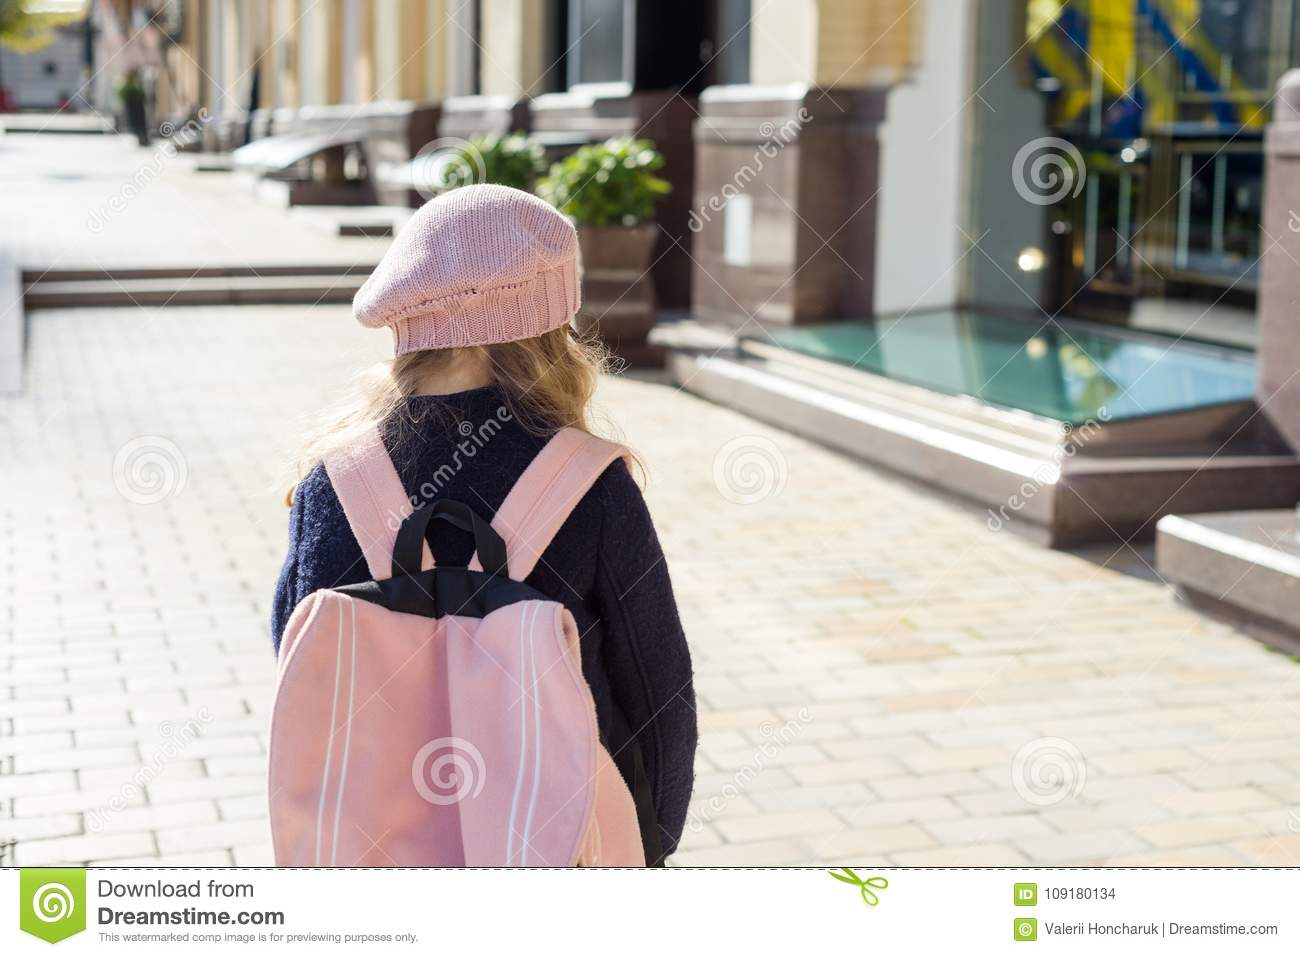 277b688418 Stylish little girl with a backpack